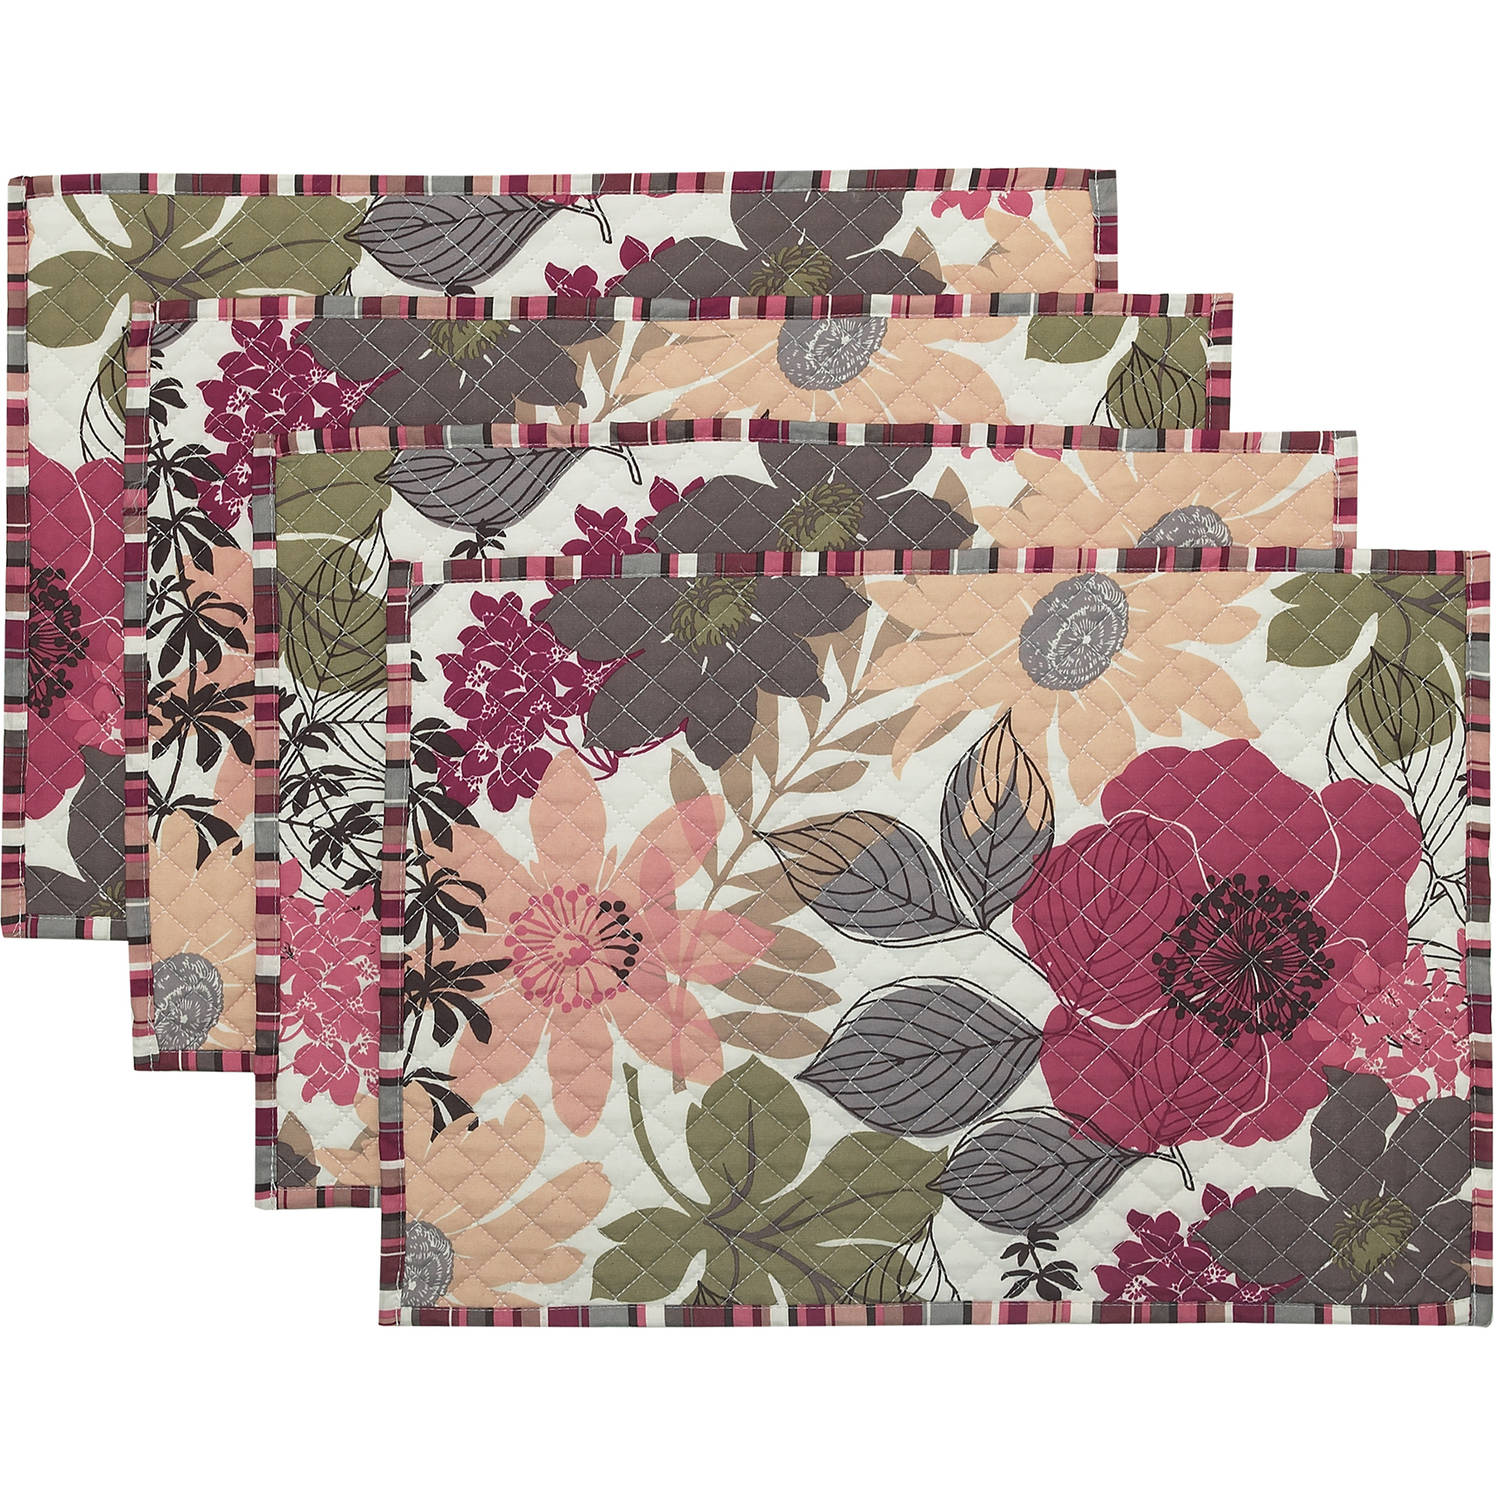 Better Homes and Gardens Quilt Floral Placemat, Set of 4